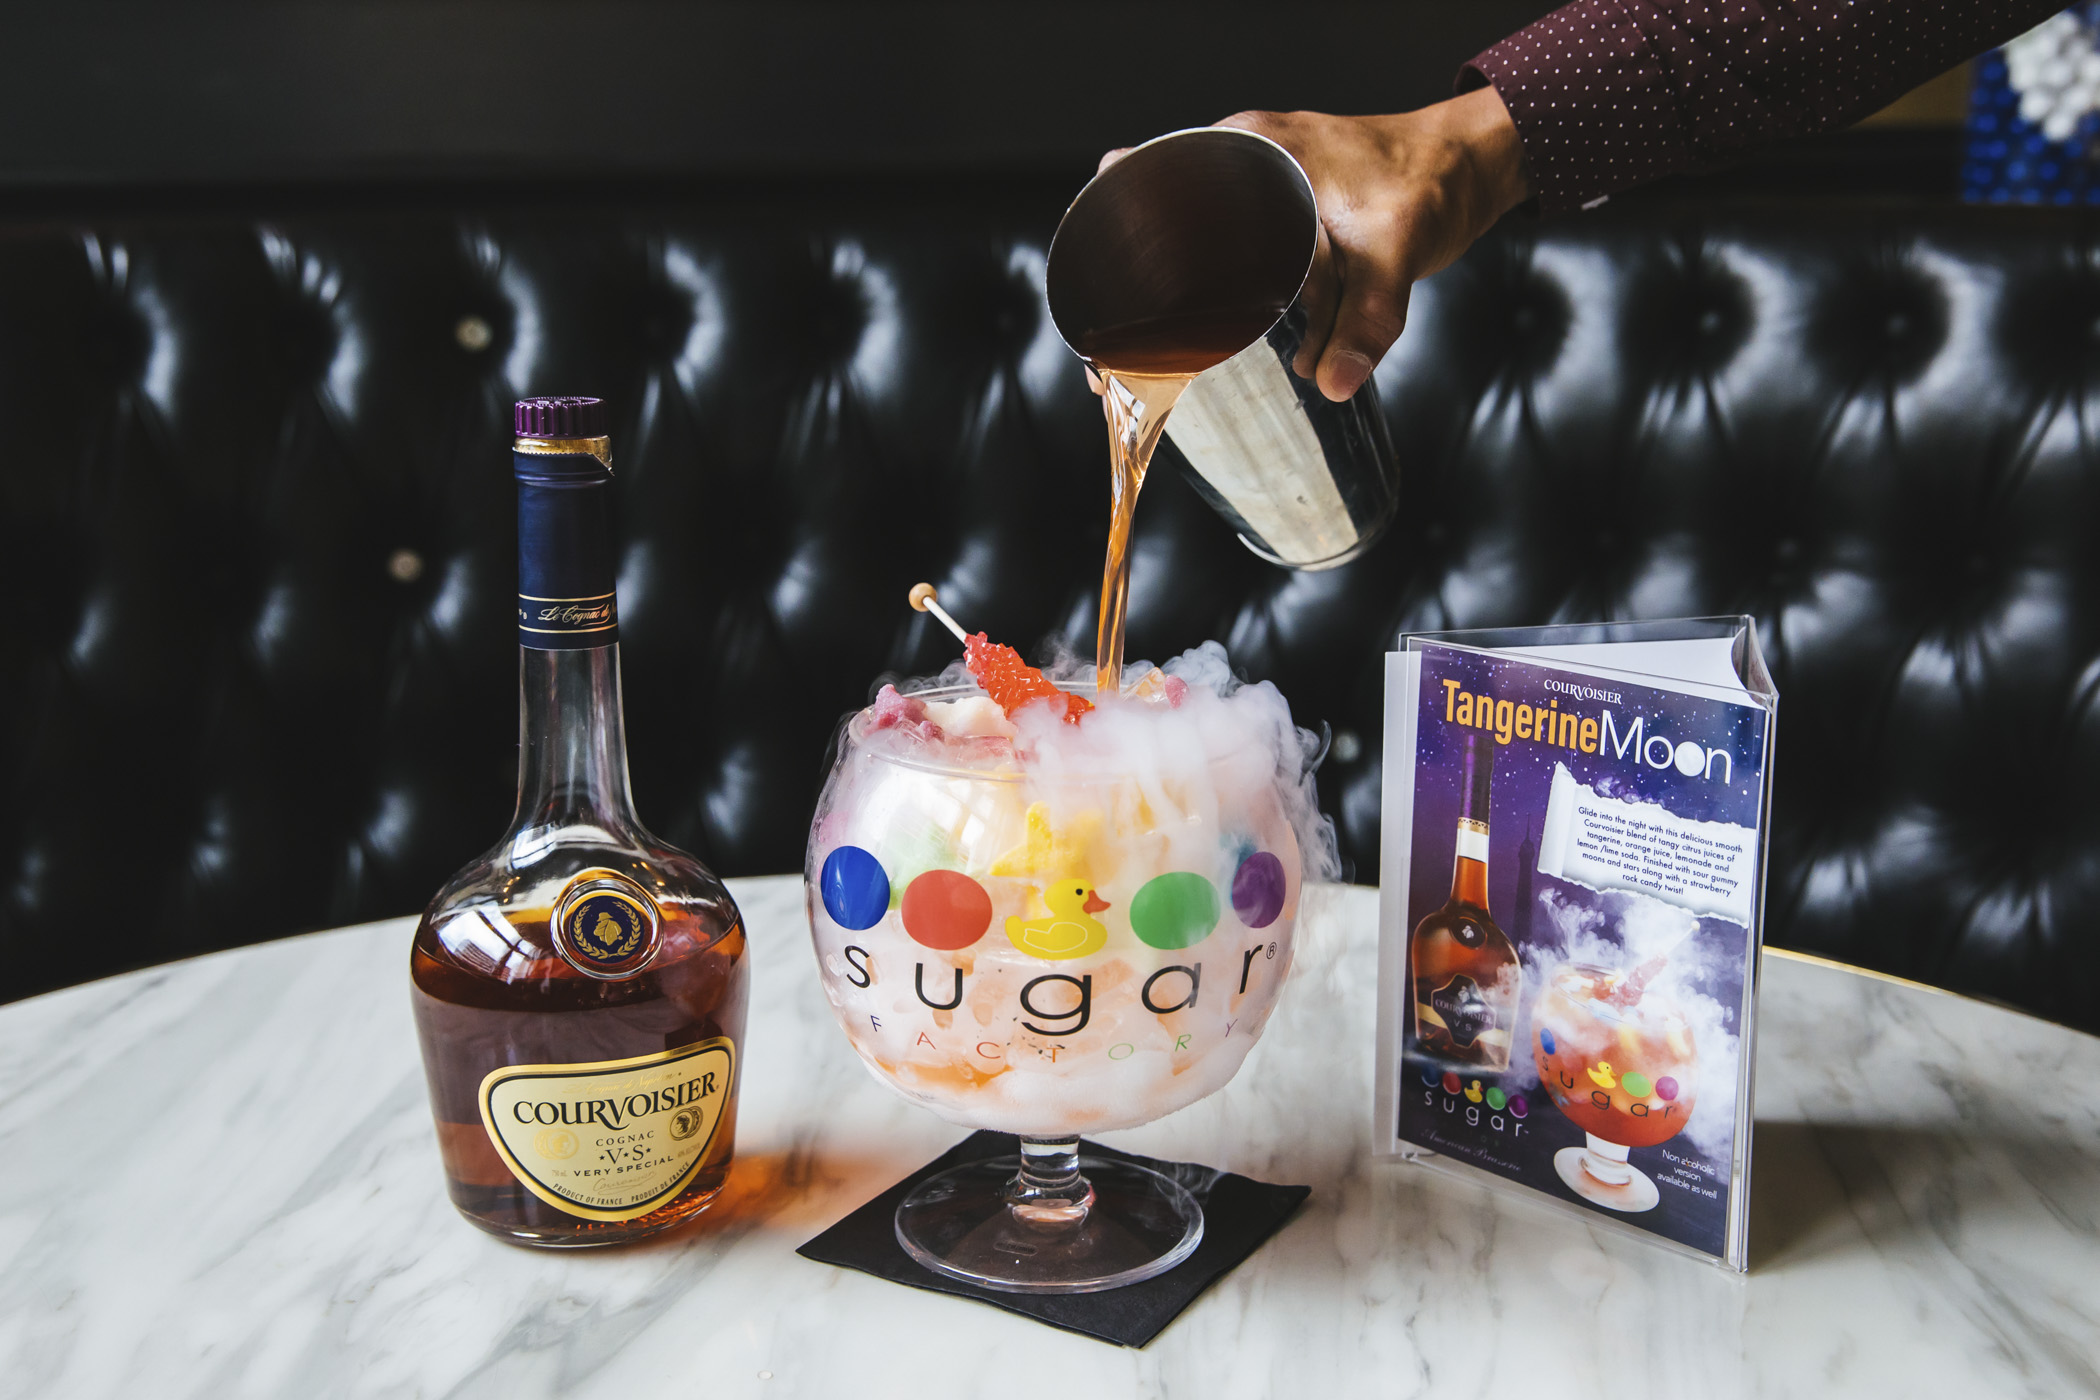 The Sugar Factory has introduced a new Courvoisier Goblet - just in time for National Cognac Day, Tuesday, June 4, 2019! The Tangerine Moon Goblet features a delicious Courvoisier blend of citrus juices of tangerine, orange juice, lemonade and lemon/lime soda. Available now through June 5! (Image: Sunita Martini / Seattle Refined).